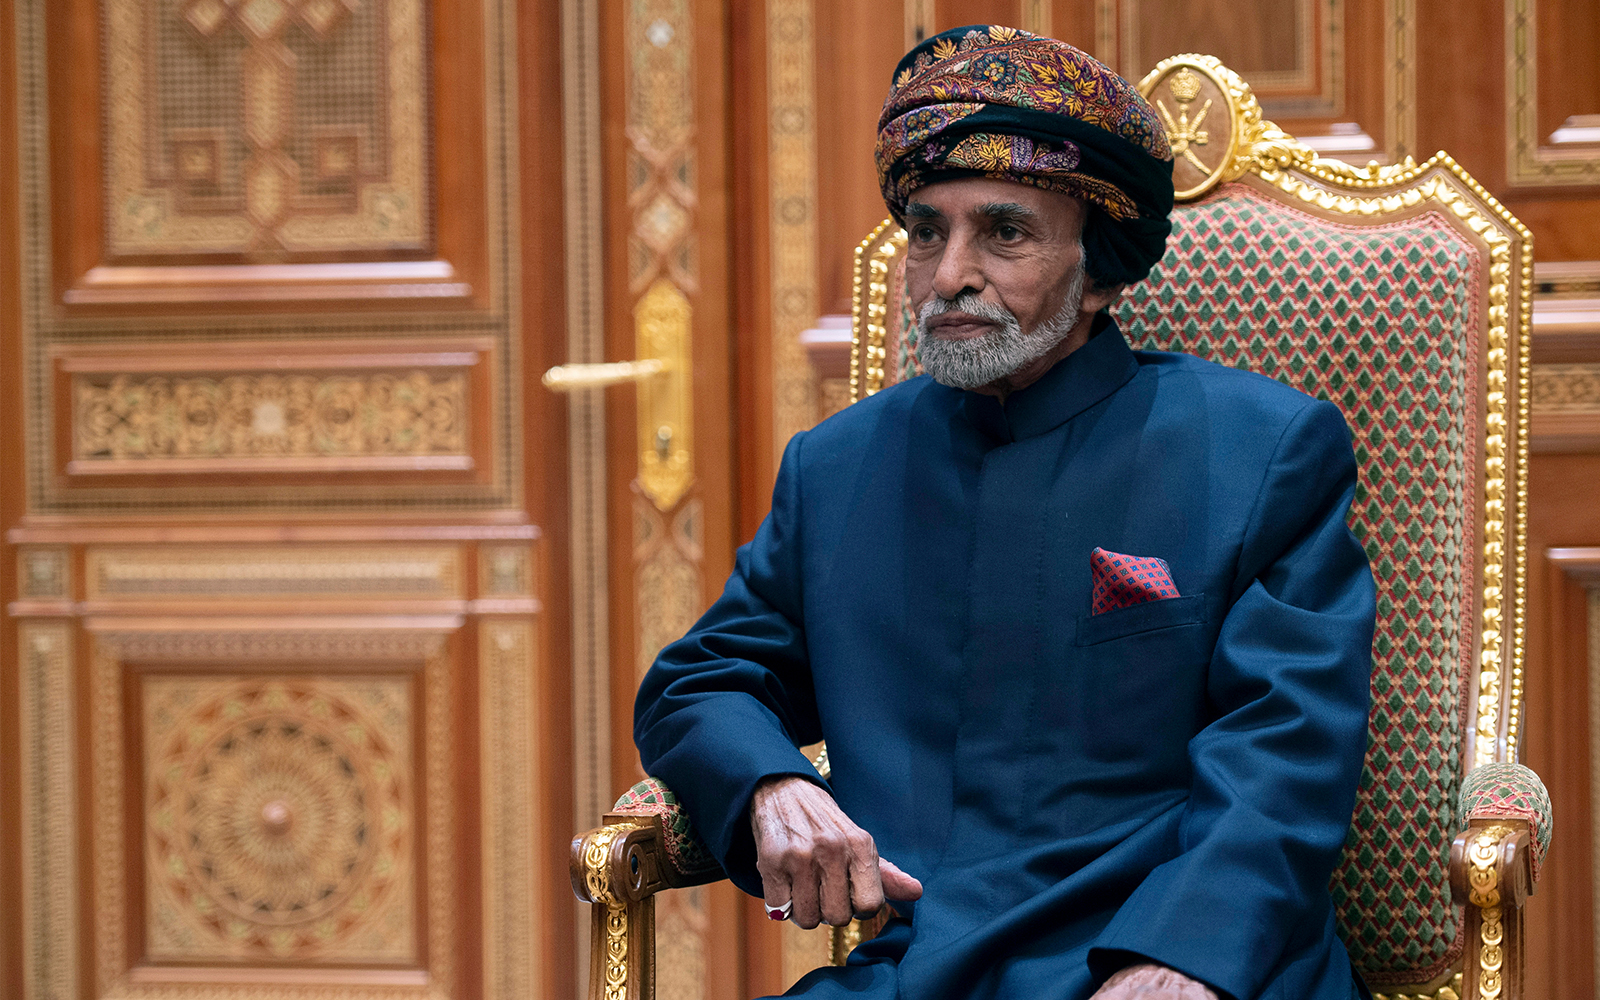 Oman's Sultan Qaboos bin Said dies at 79, leaving no heir